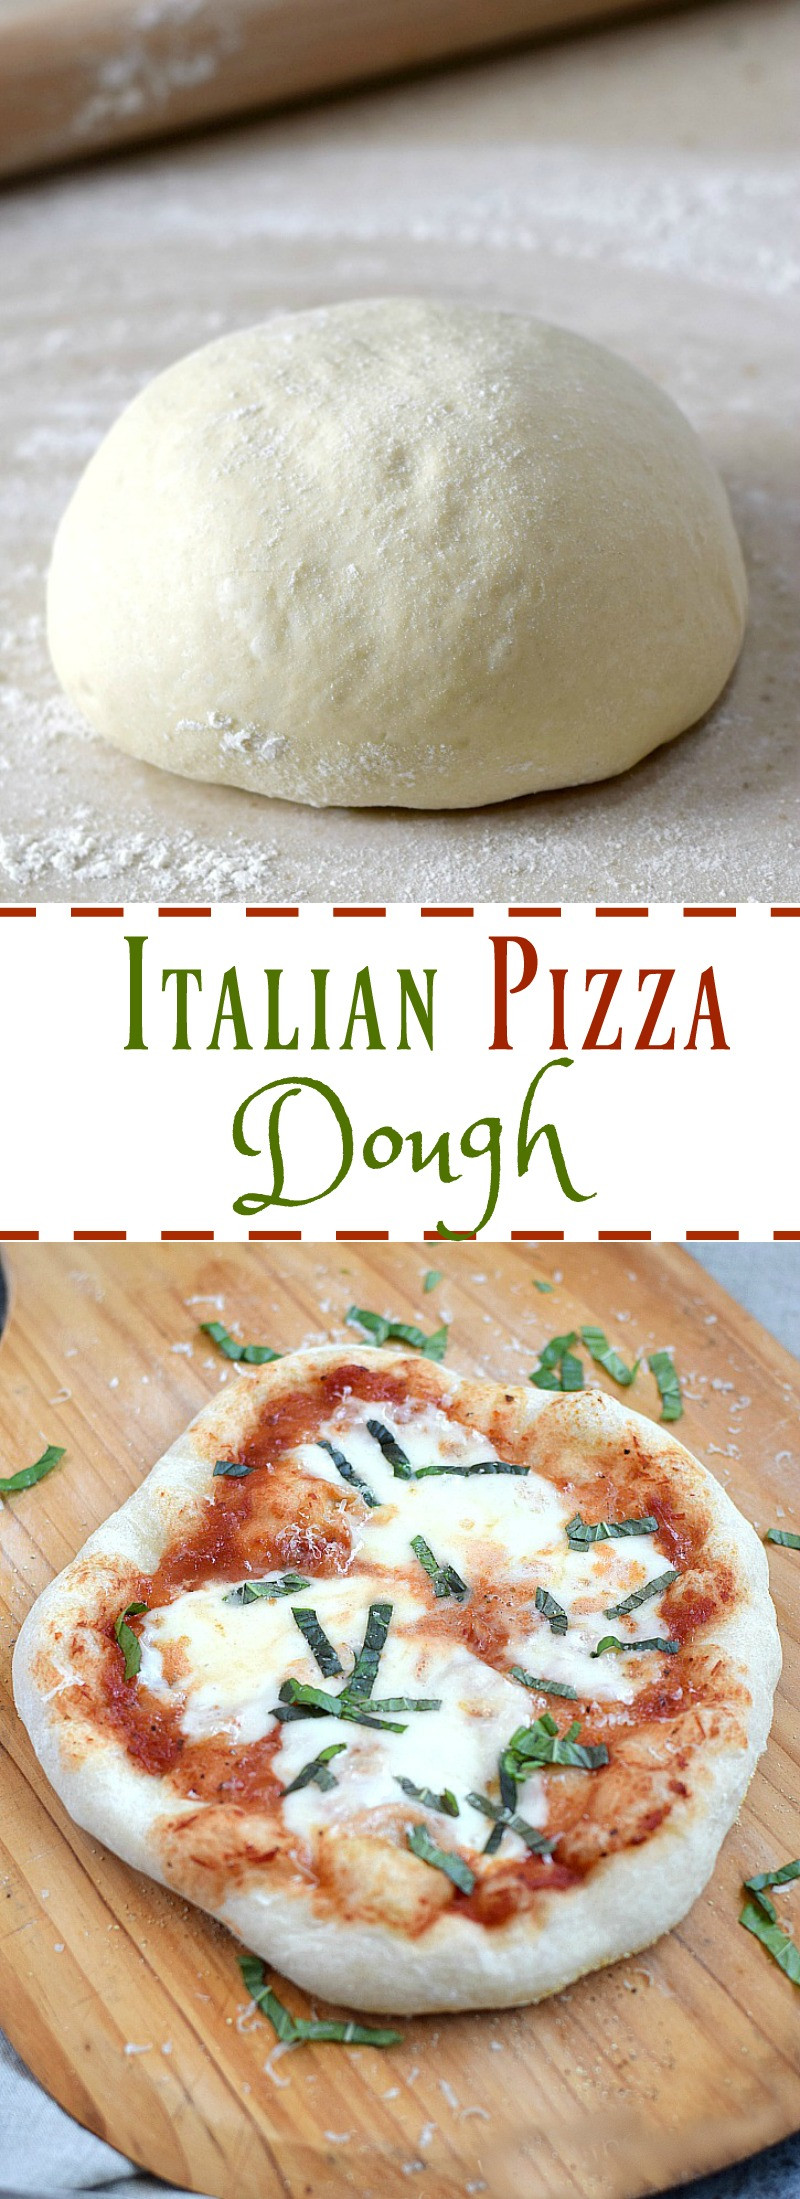 Recipes Using Pizza Dough  Italian Pizza Dough Cooking With Curls